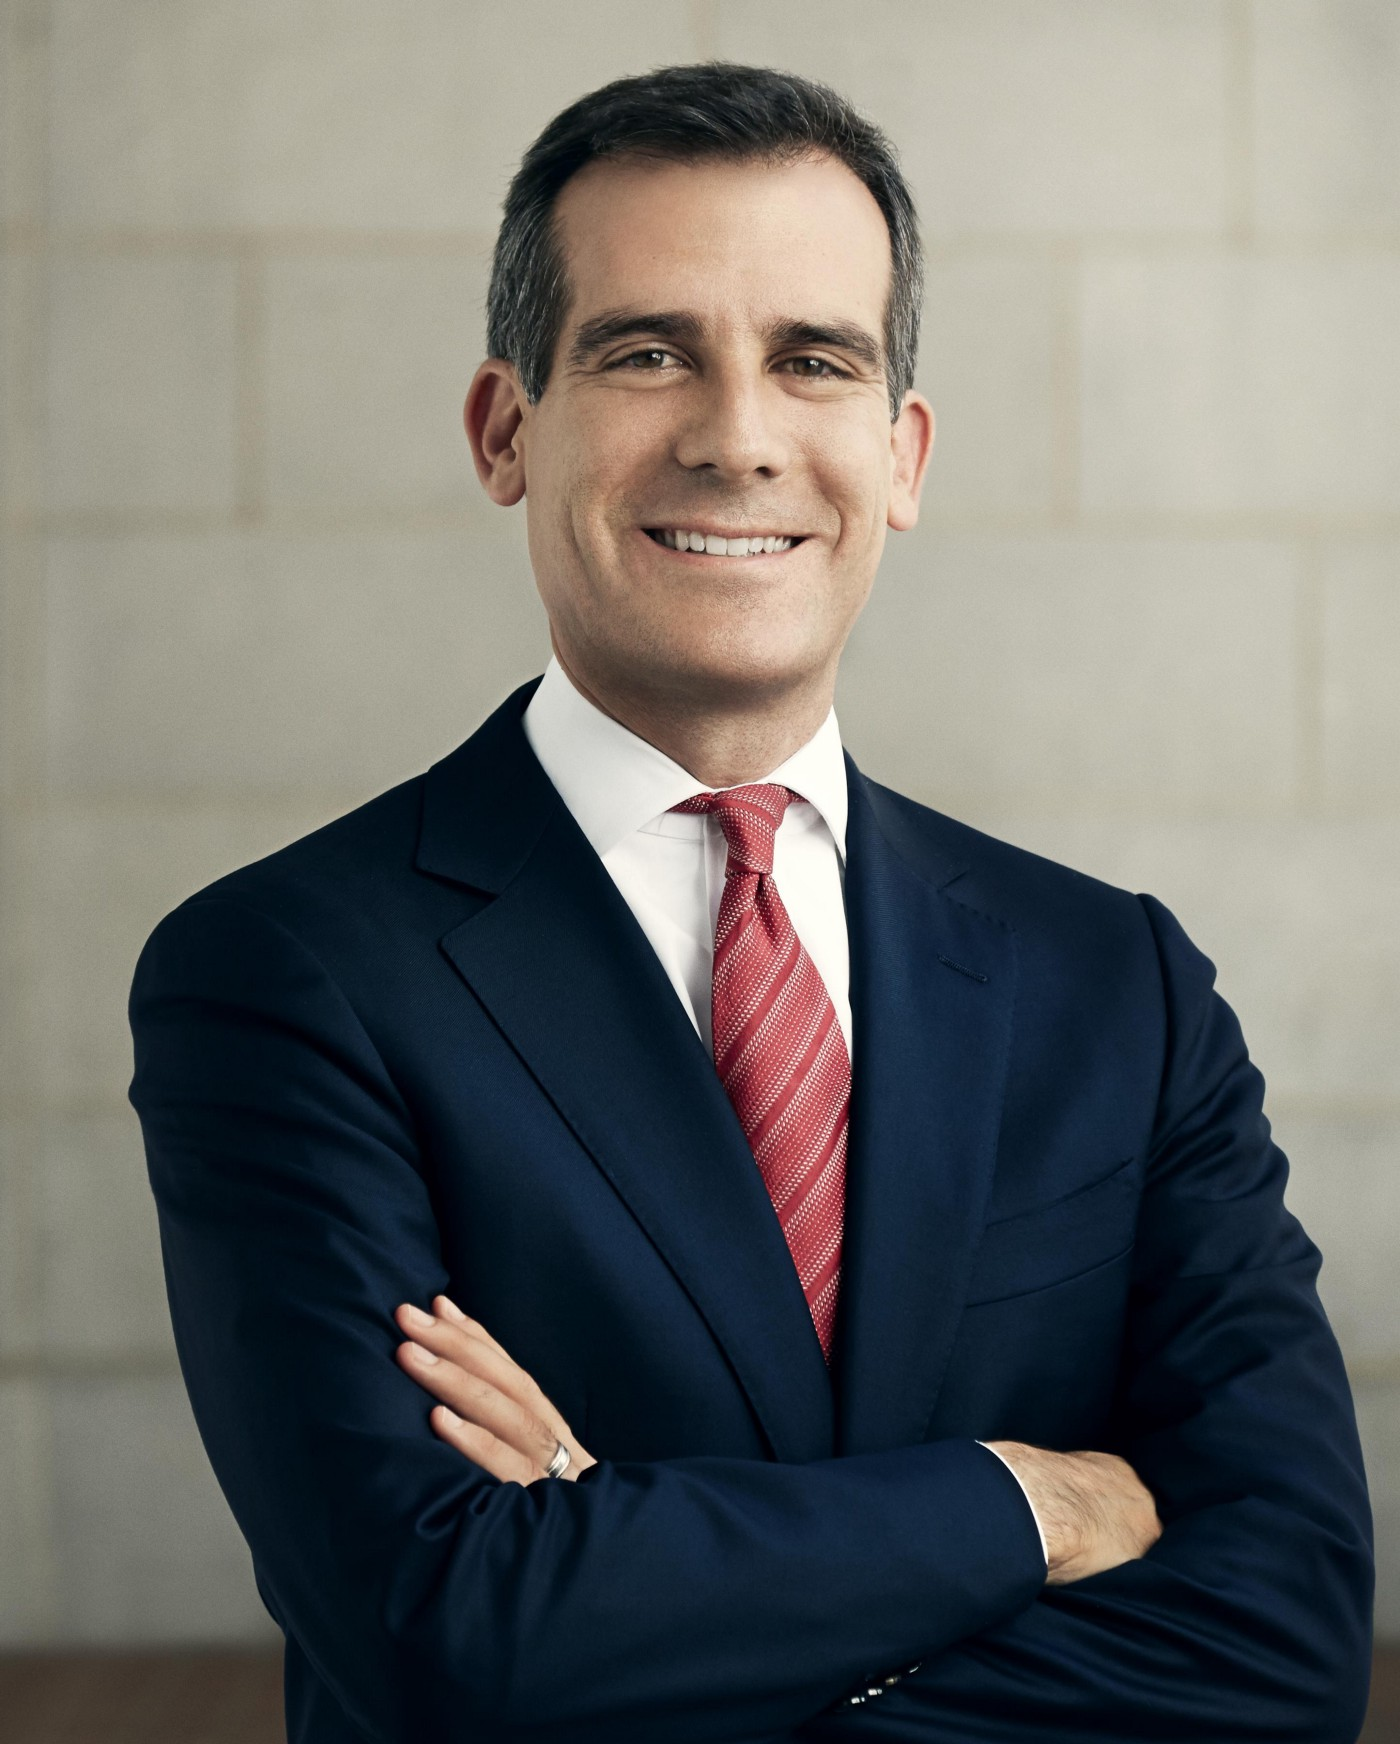 Mayor Eric Garcetti, the 42nd Mayor of Los Angeles.